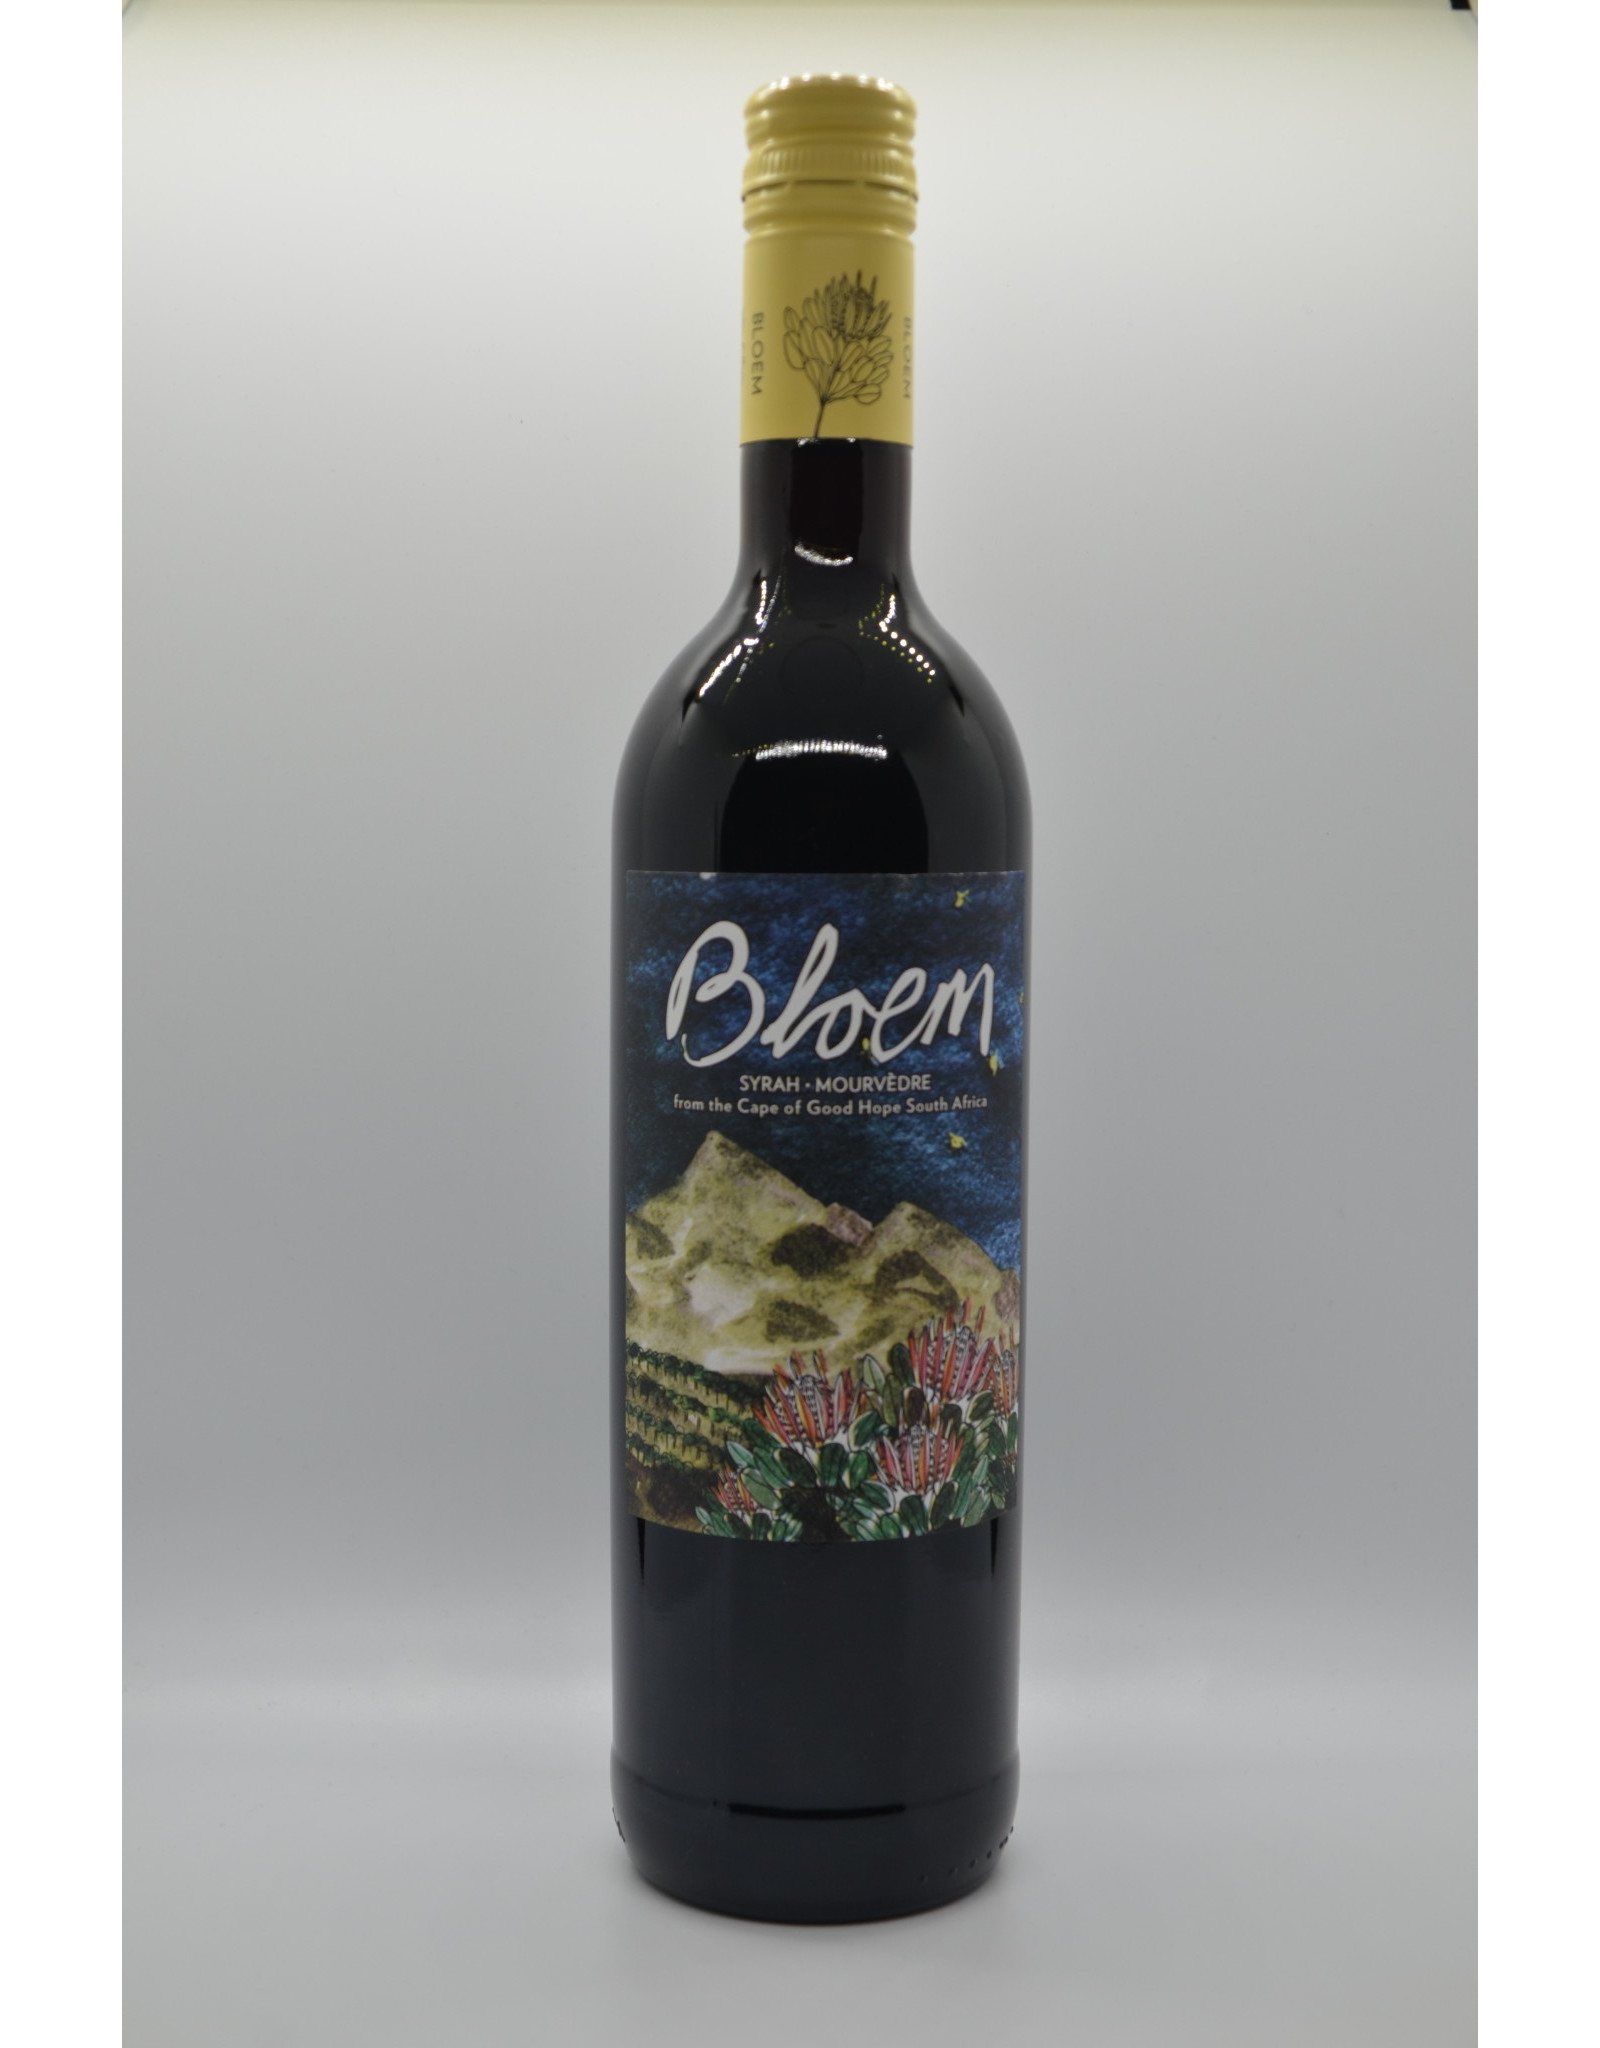 South Africa Bloem Red Syrah/Mourvedre